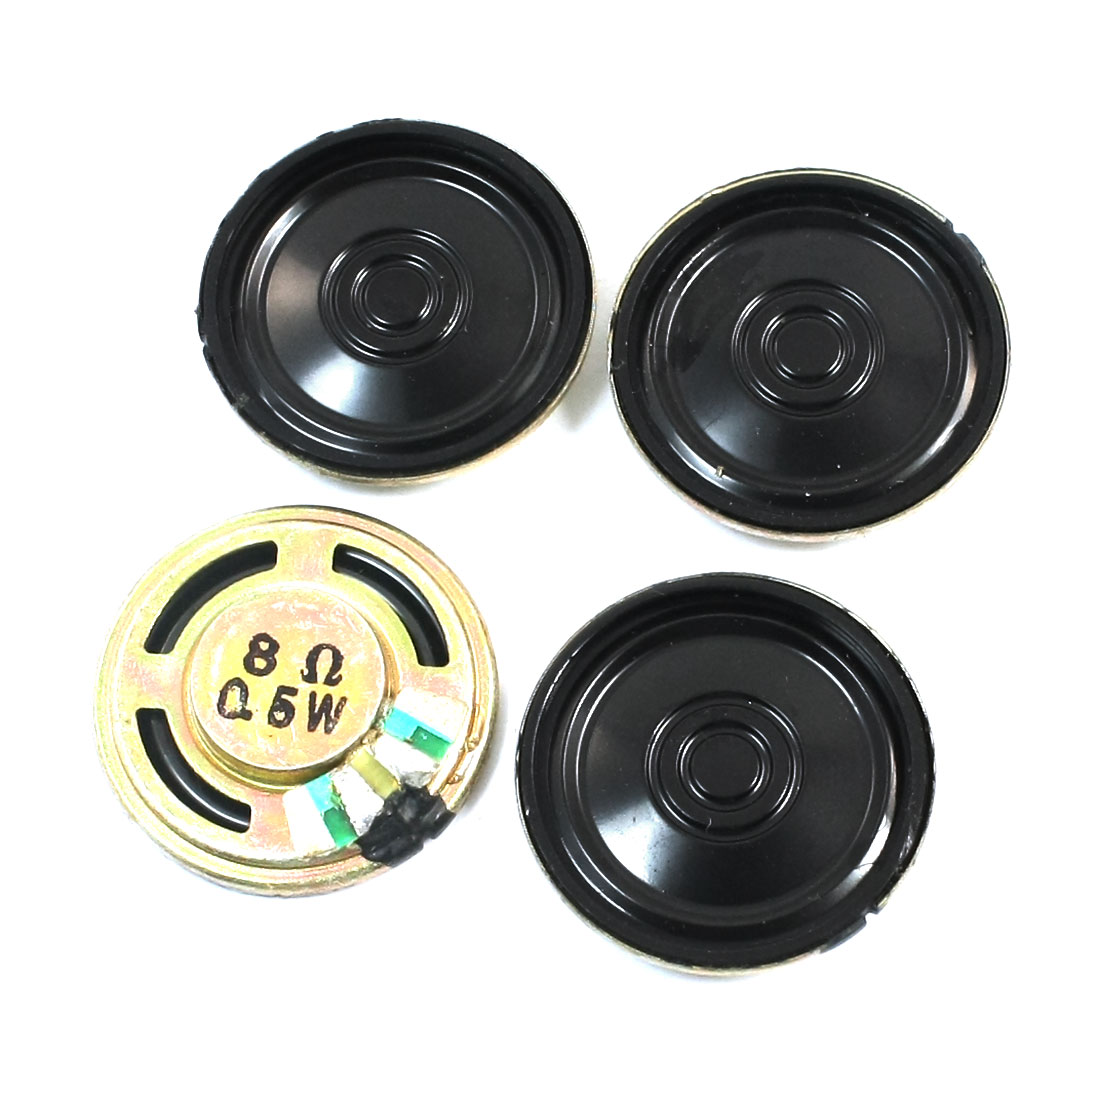 0.5W 8 Ohm 23mm Dia Metal Shell Internal Magnet Electronic Toy DVD/EVD Player Audio Speaker Amplifier Loudspeaker 4Pcs